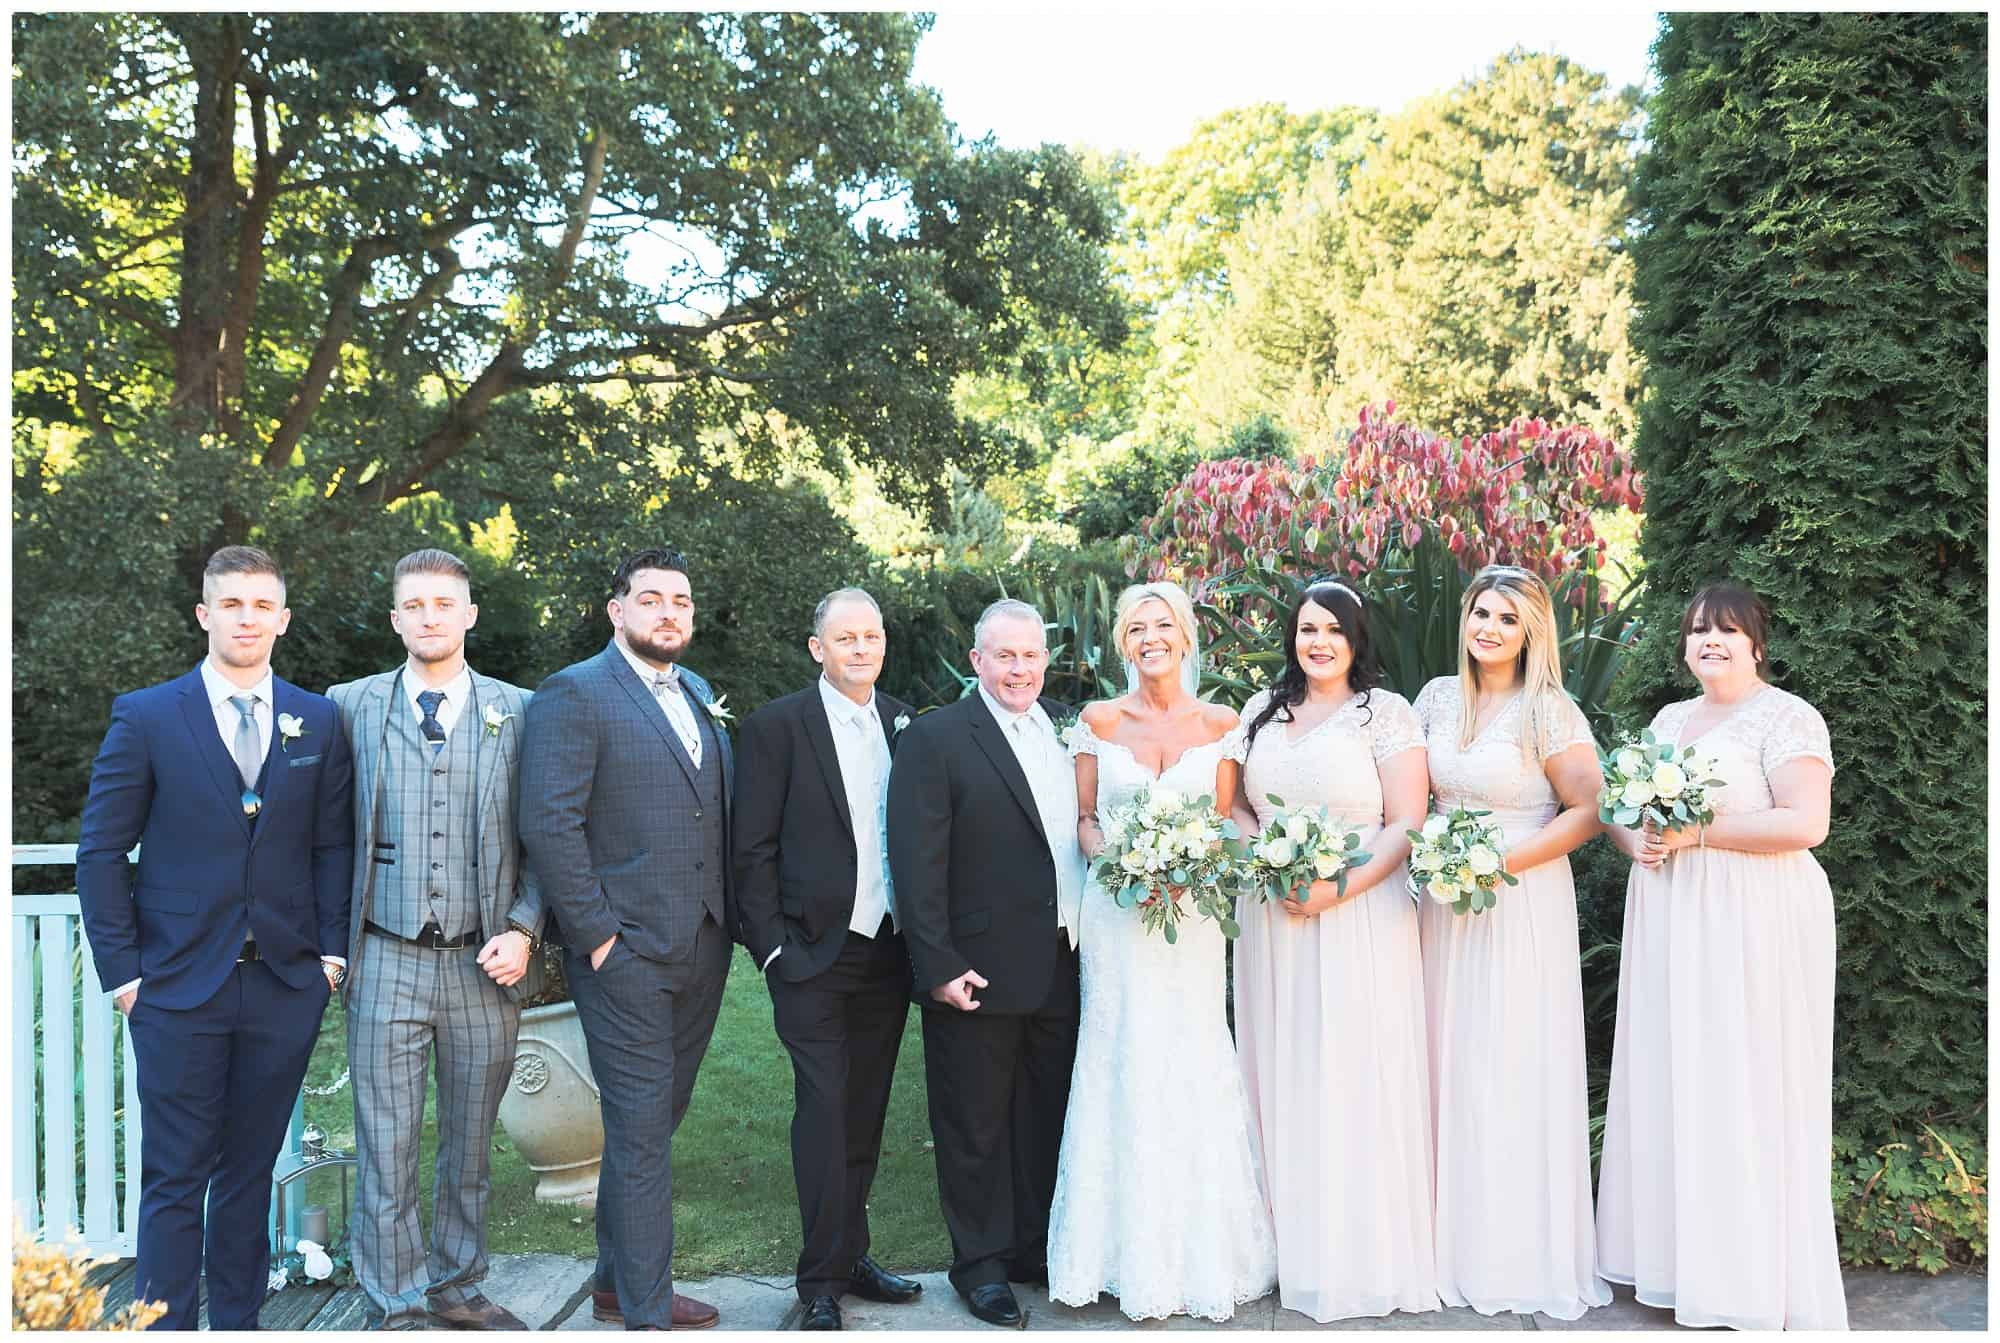 Whitley Hall Hotel Wedding - grooms and bridesmaids